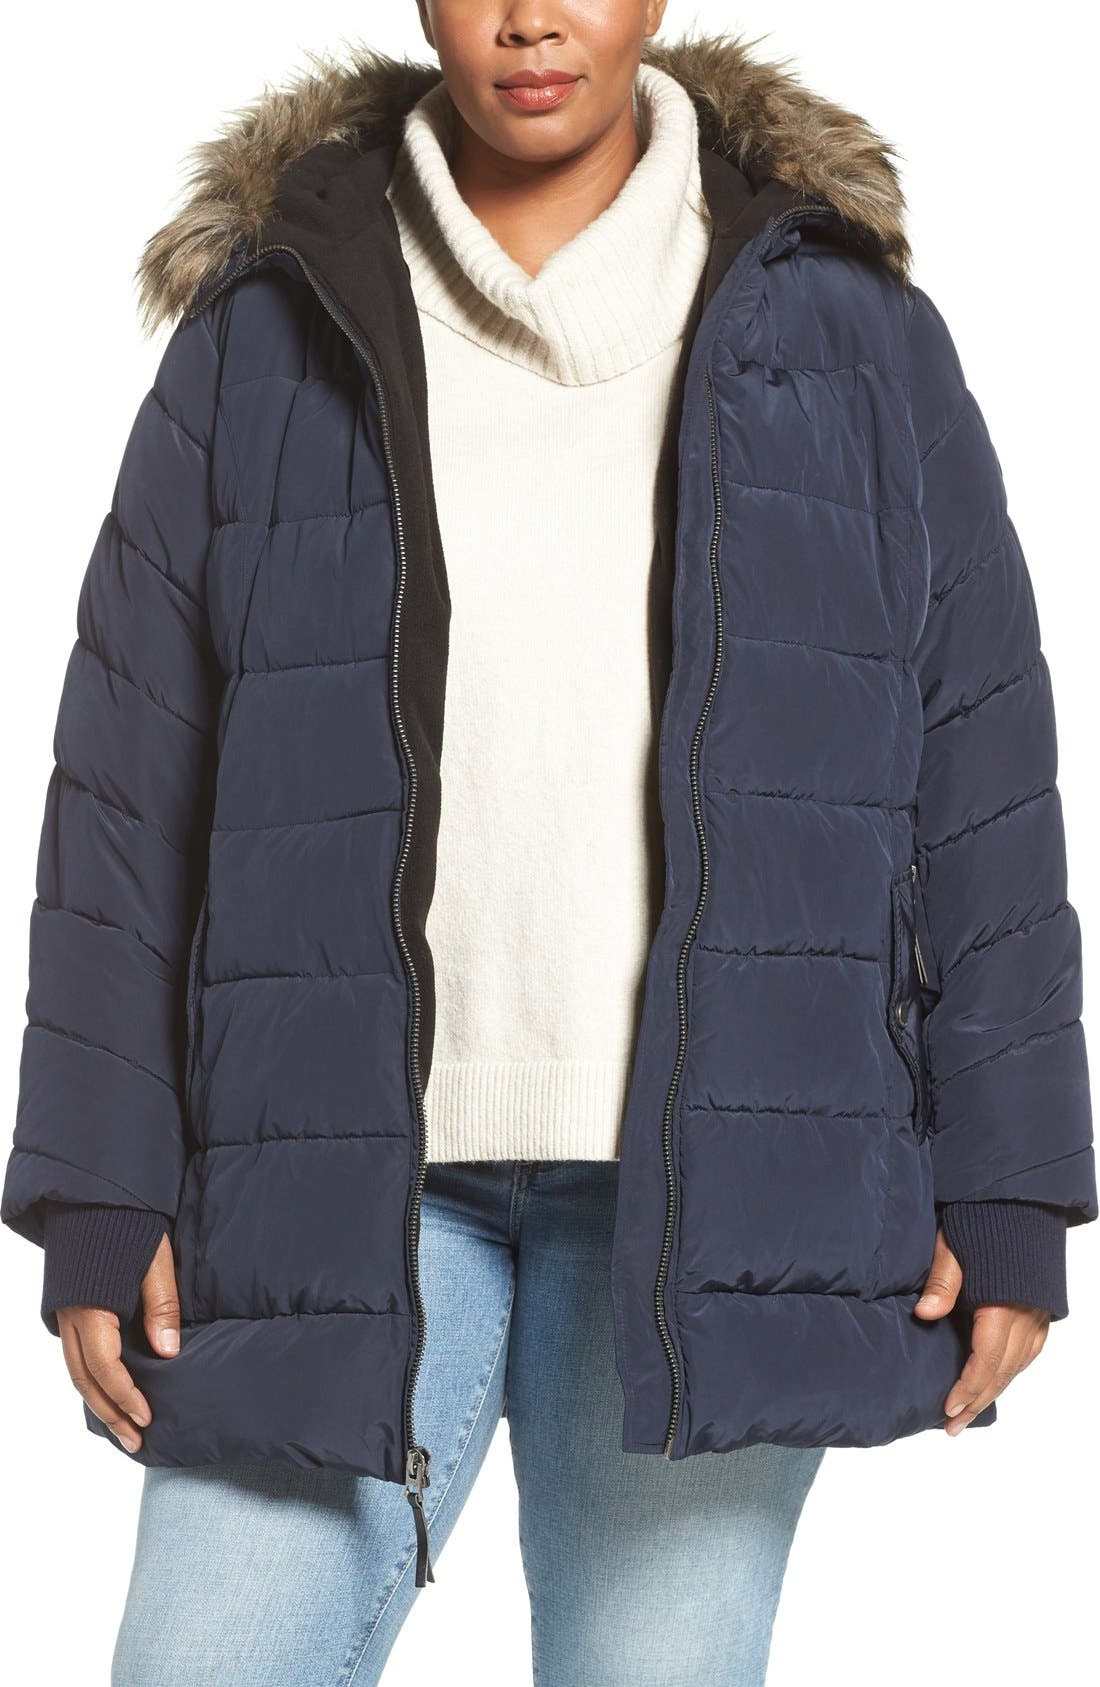 Alternate Image 1 Selected - Lucky Brand Belted Puffer Jacket with Faux Fur Trim (Plus Size)